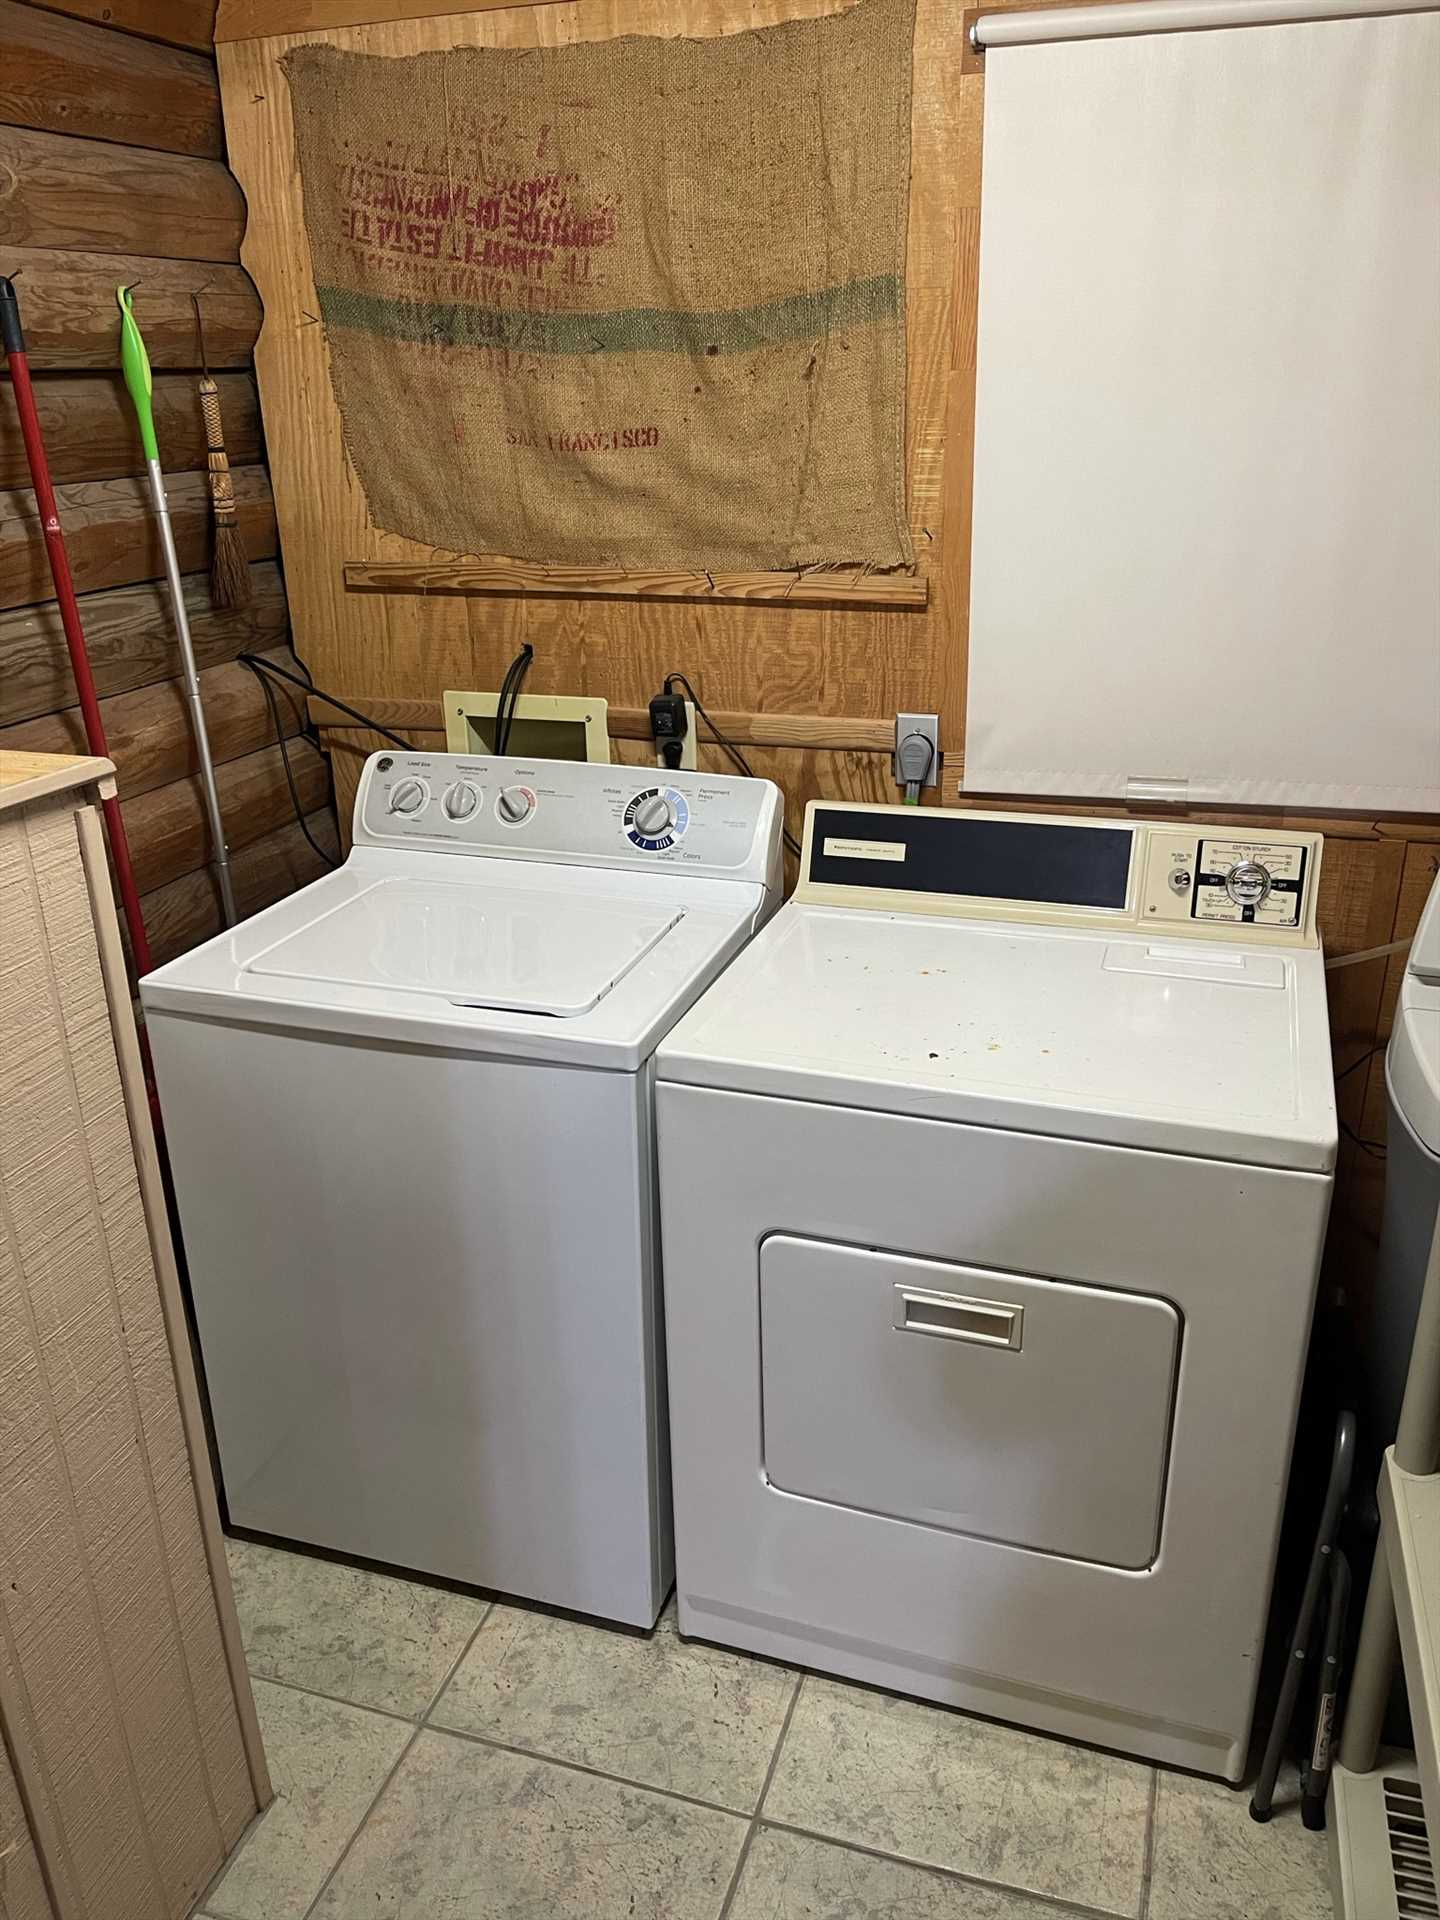 Don't fight a massive pile of laundry at the end of your holiday, keep up with it with the on-site washer and dryer.